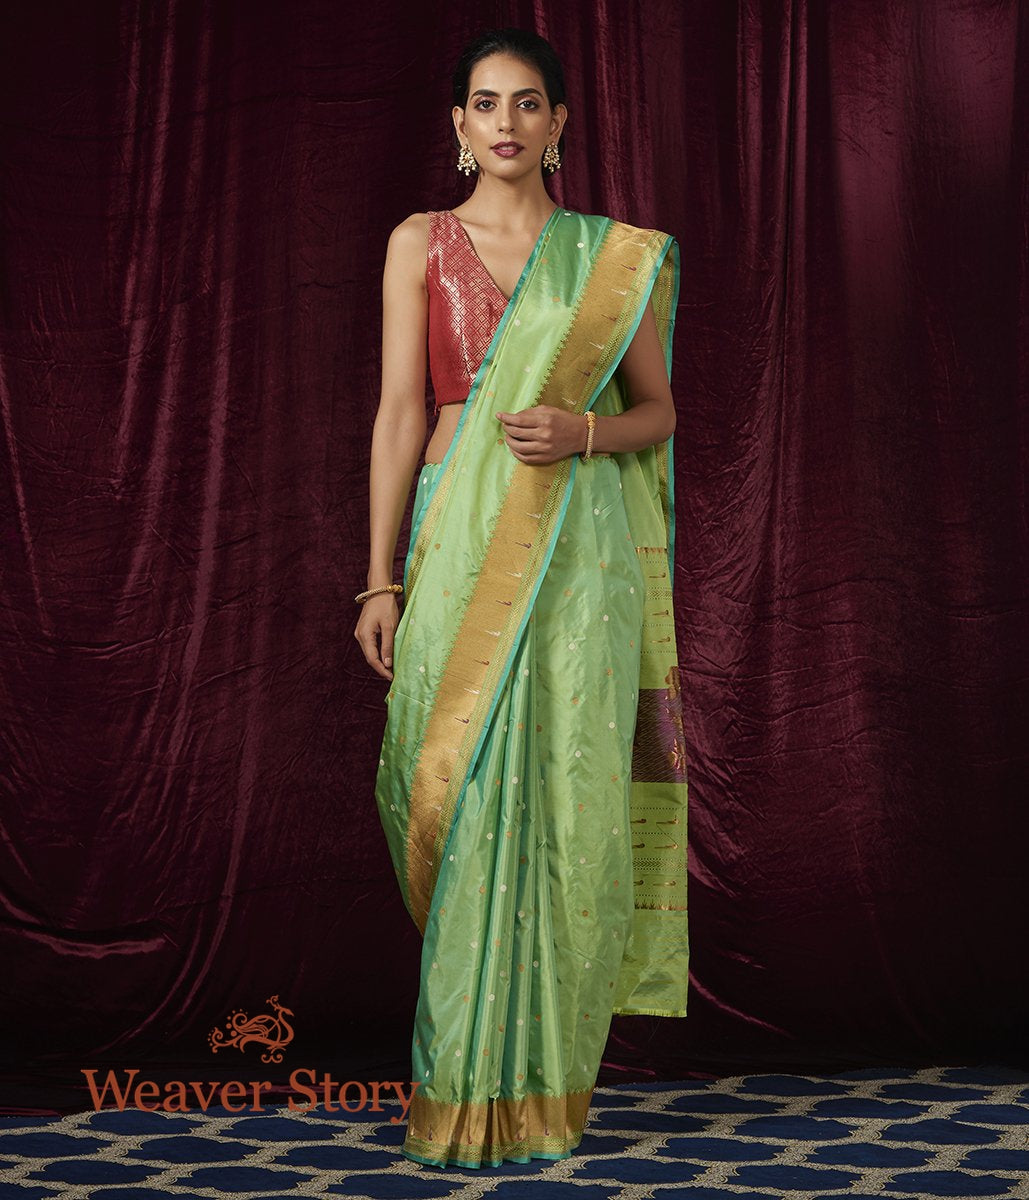 Handwoven Light Green Katan Silk Saree with Paithani Border